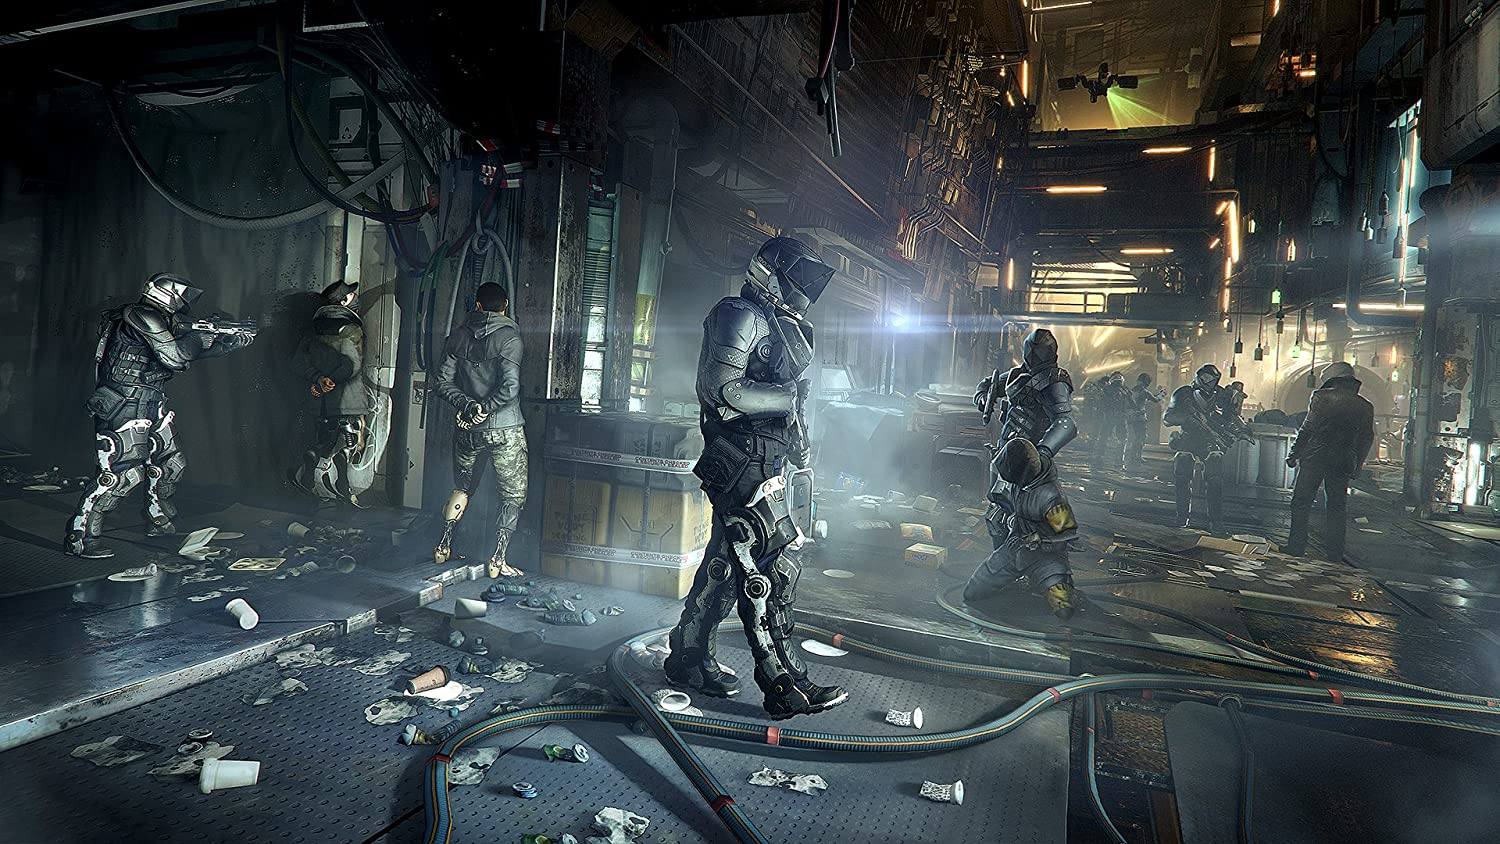 Deus Ex Mankind Divided Playstation 4 Square Enix Sony Ps4 Mass Effect Andromeda R3 Llc Video Games